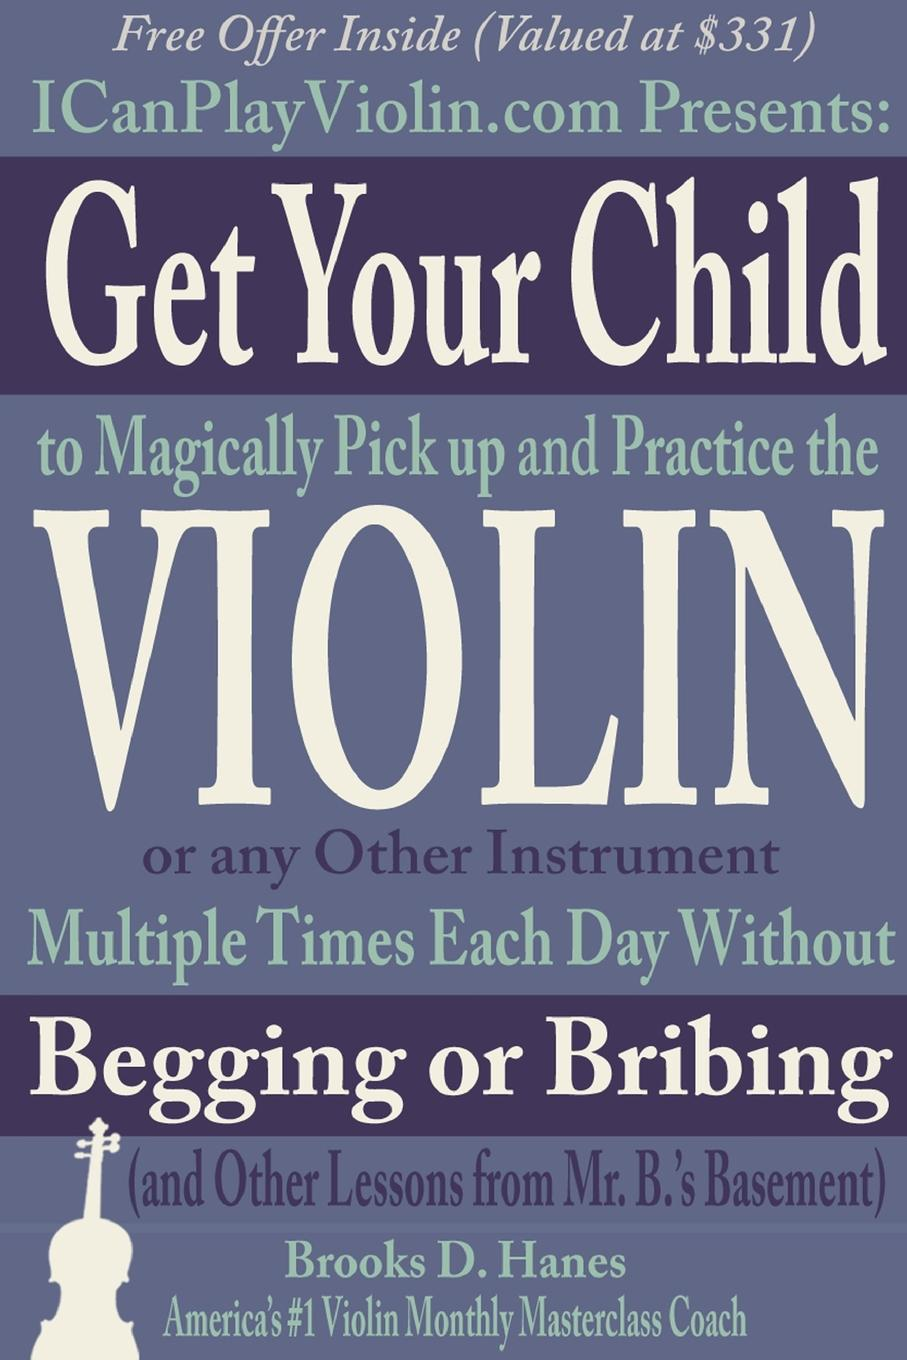 Brooks Hanes Get Your Child to Magically Pick Up and Practice the Violin or Any Other Instrument Multiple Times Each Day Without Begging Bribing (and Lessons from Mr. B..s Basement)